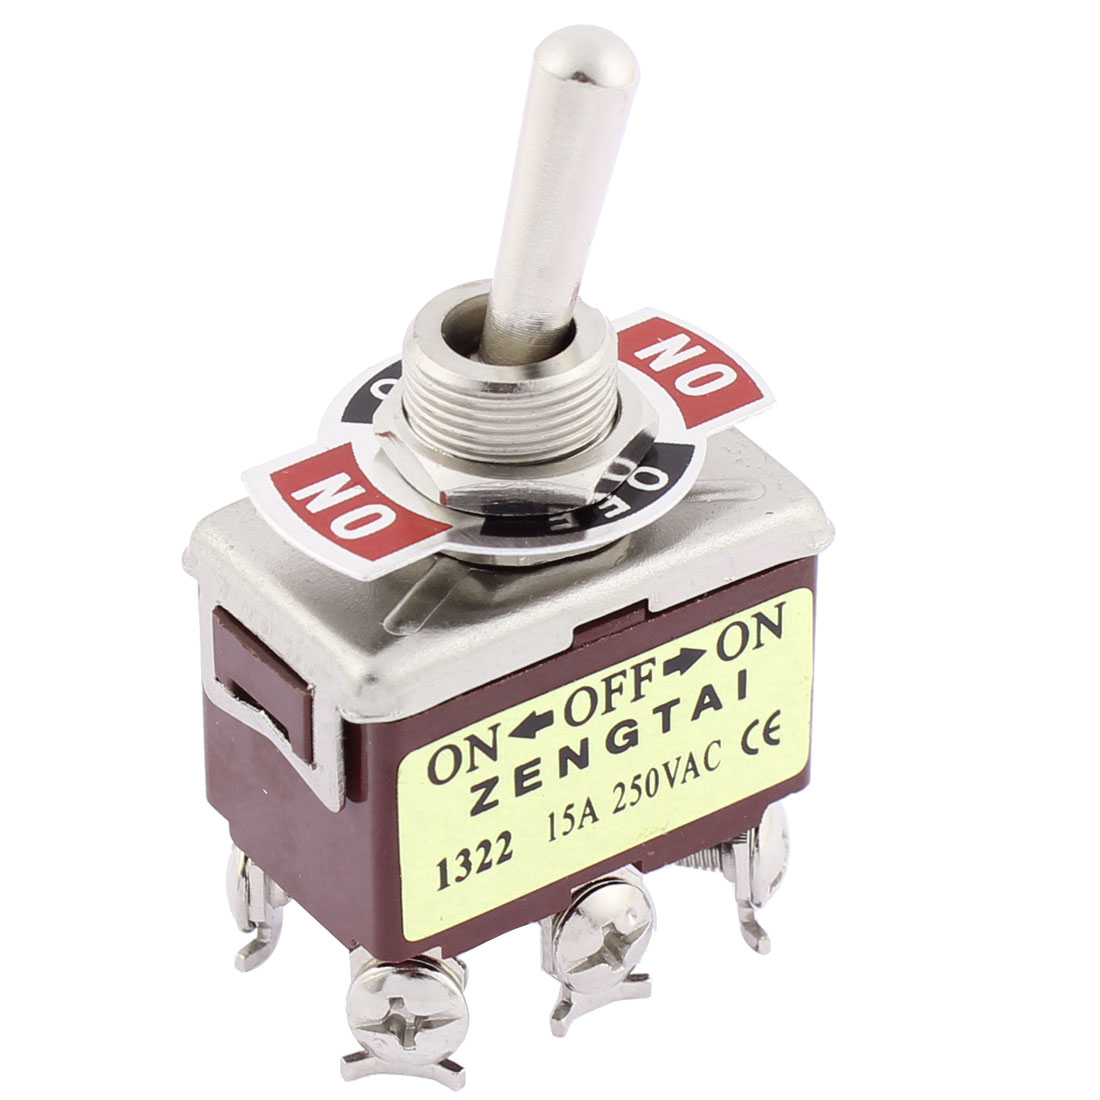 AC 250V 15A DPDT ON/OFF/ON 3 Position Self Locking Toggle Switch T702CW